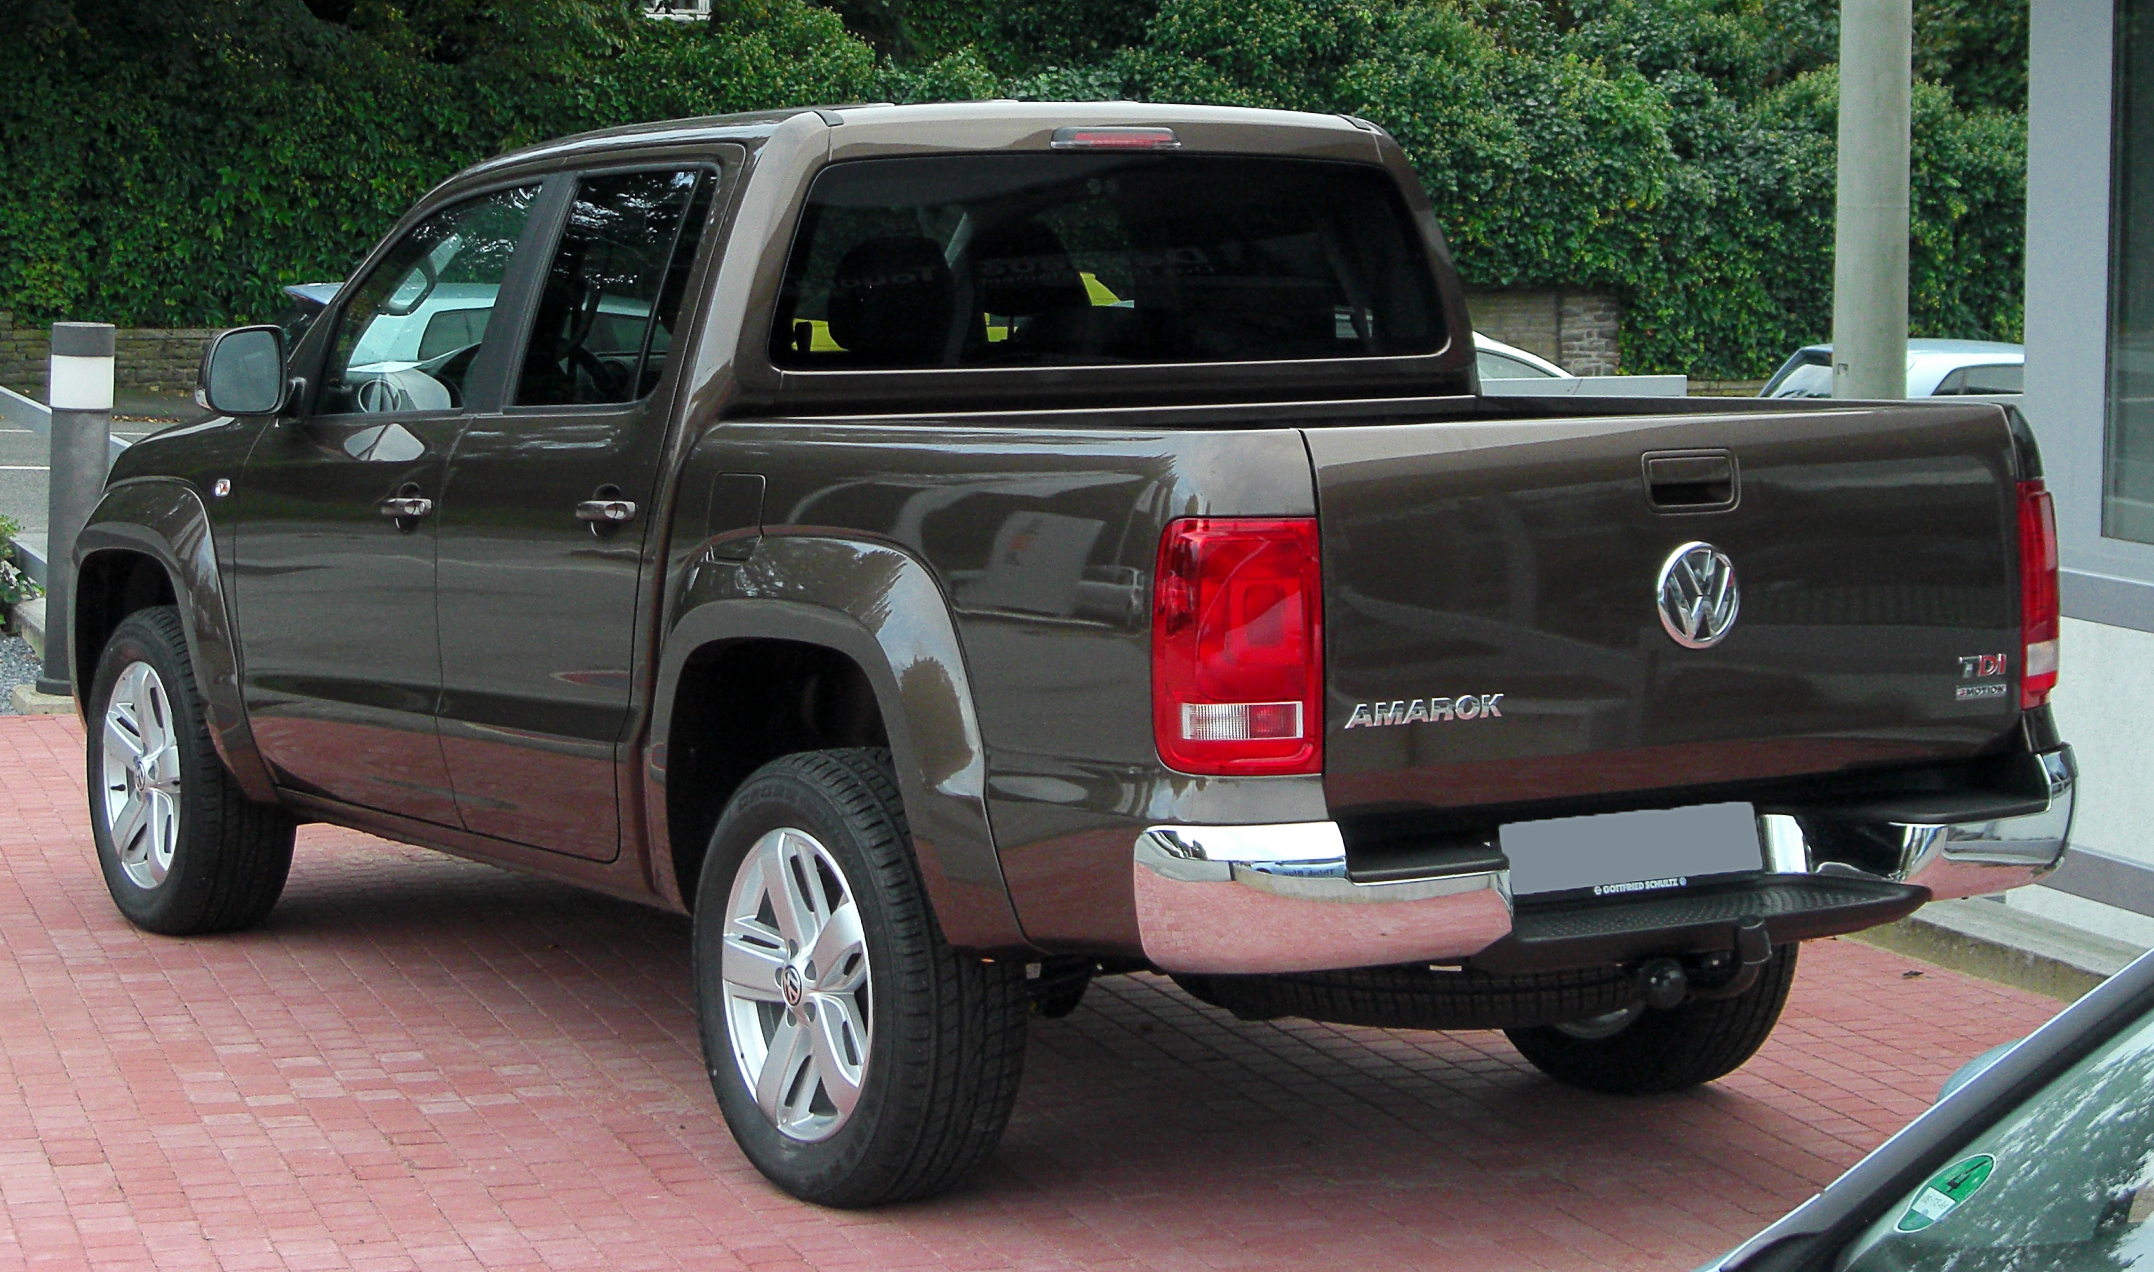 Vw Amarok Dimensions File Vw Amarok 2 Tdi 4motion Dc Highline Rear 20100919